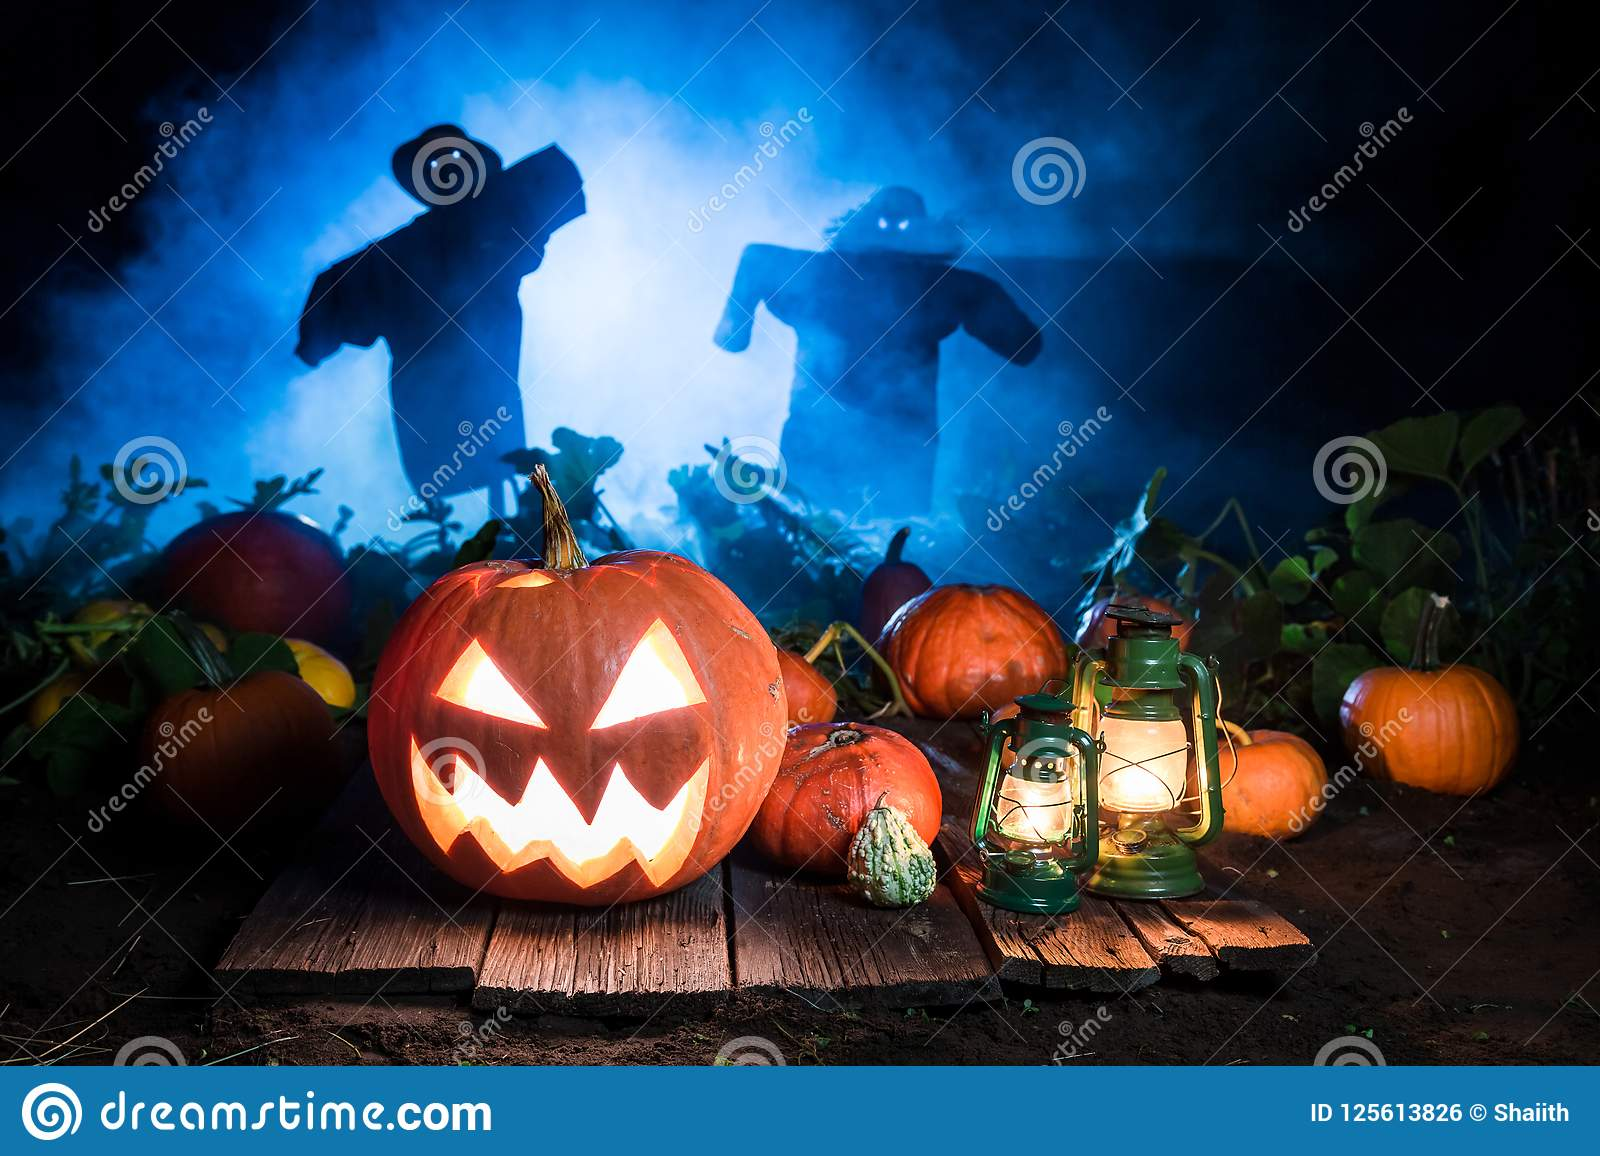 Halloween pumpkin with scarecrows and blue mist